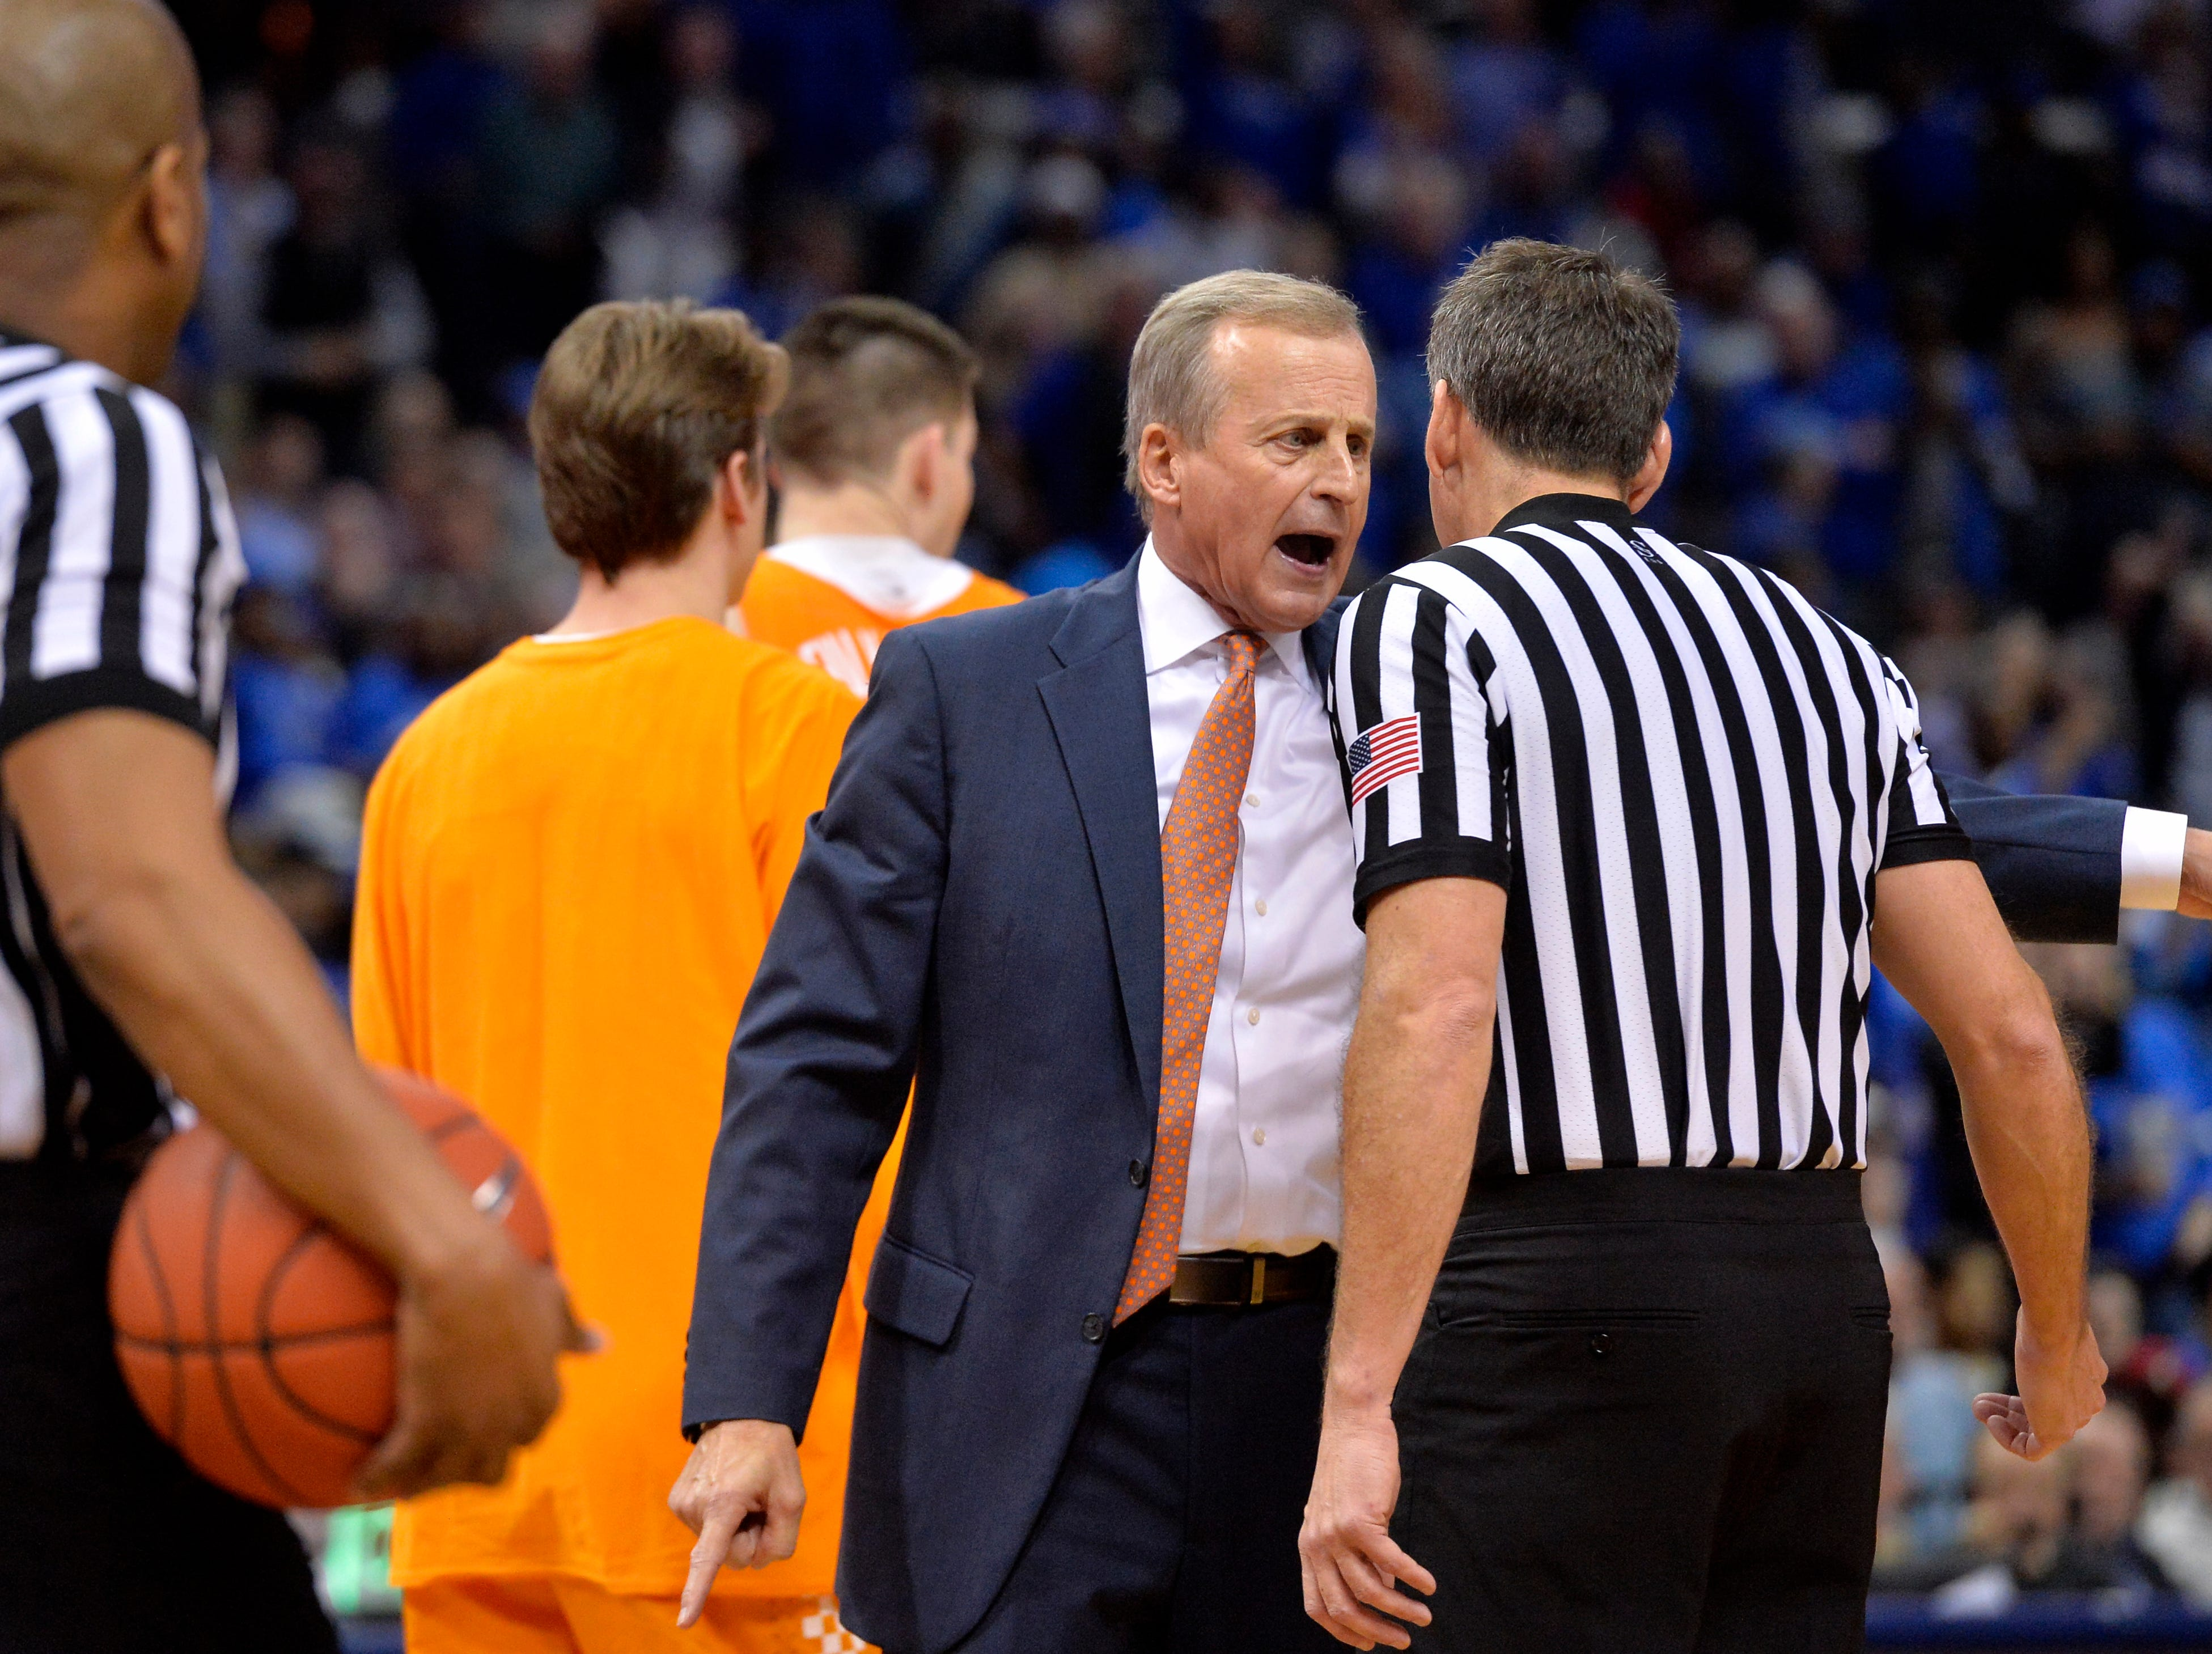 Tennessee head coach Rick Barnes reacts to a referee's call in the second half of an NCAA college basketball game against Memphis Saturday, Dec. 15, 2018, in Memphis, Tenn.